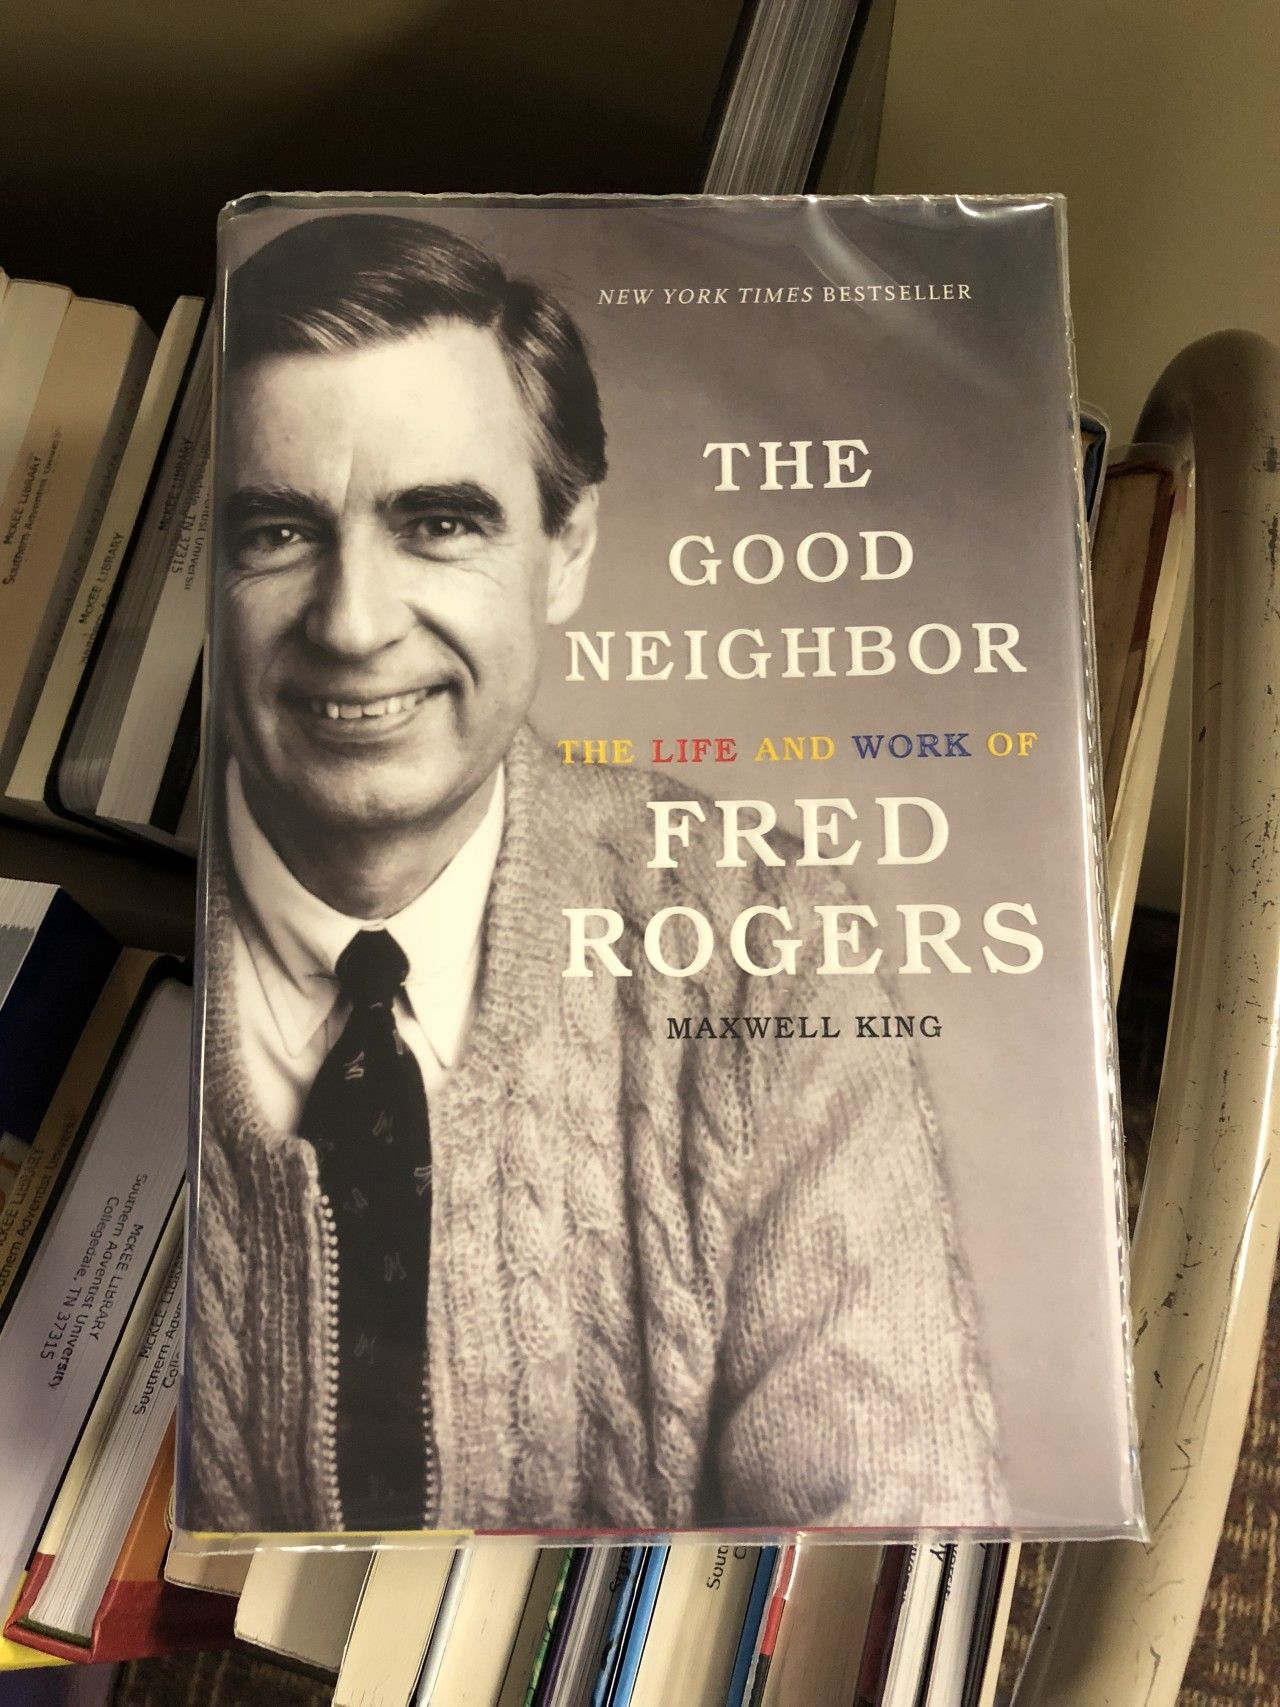 The Good Neighbor The Life And Work Of Fred Rogers By Maxwell King Is Now Available At Mckee Library I Have Really Nev New Books Good Neighbor Fred Rogers